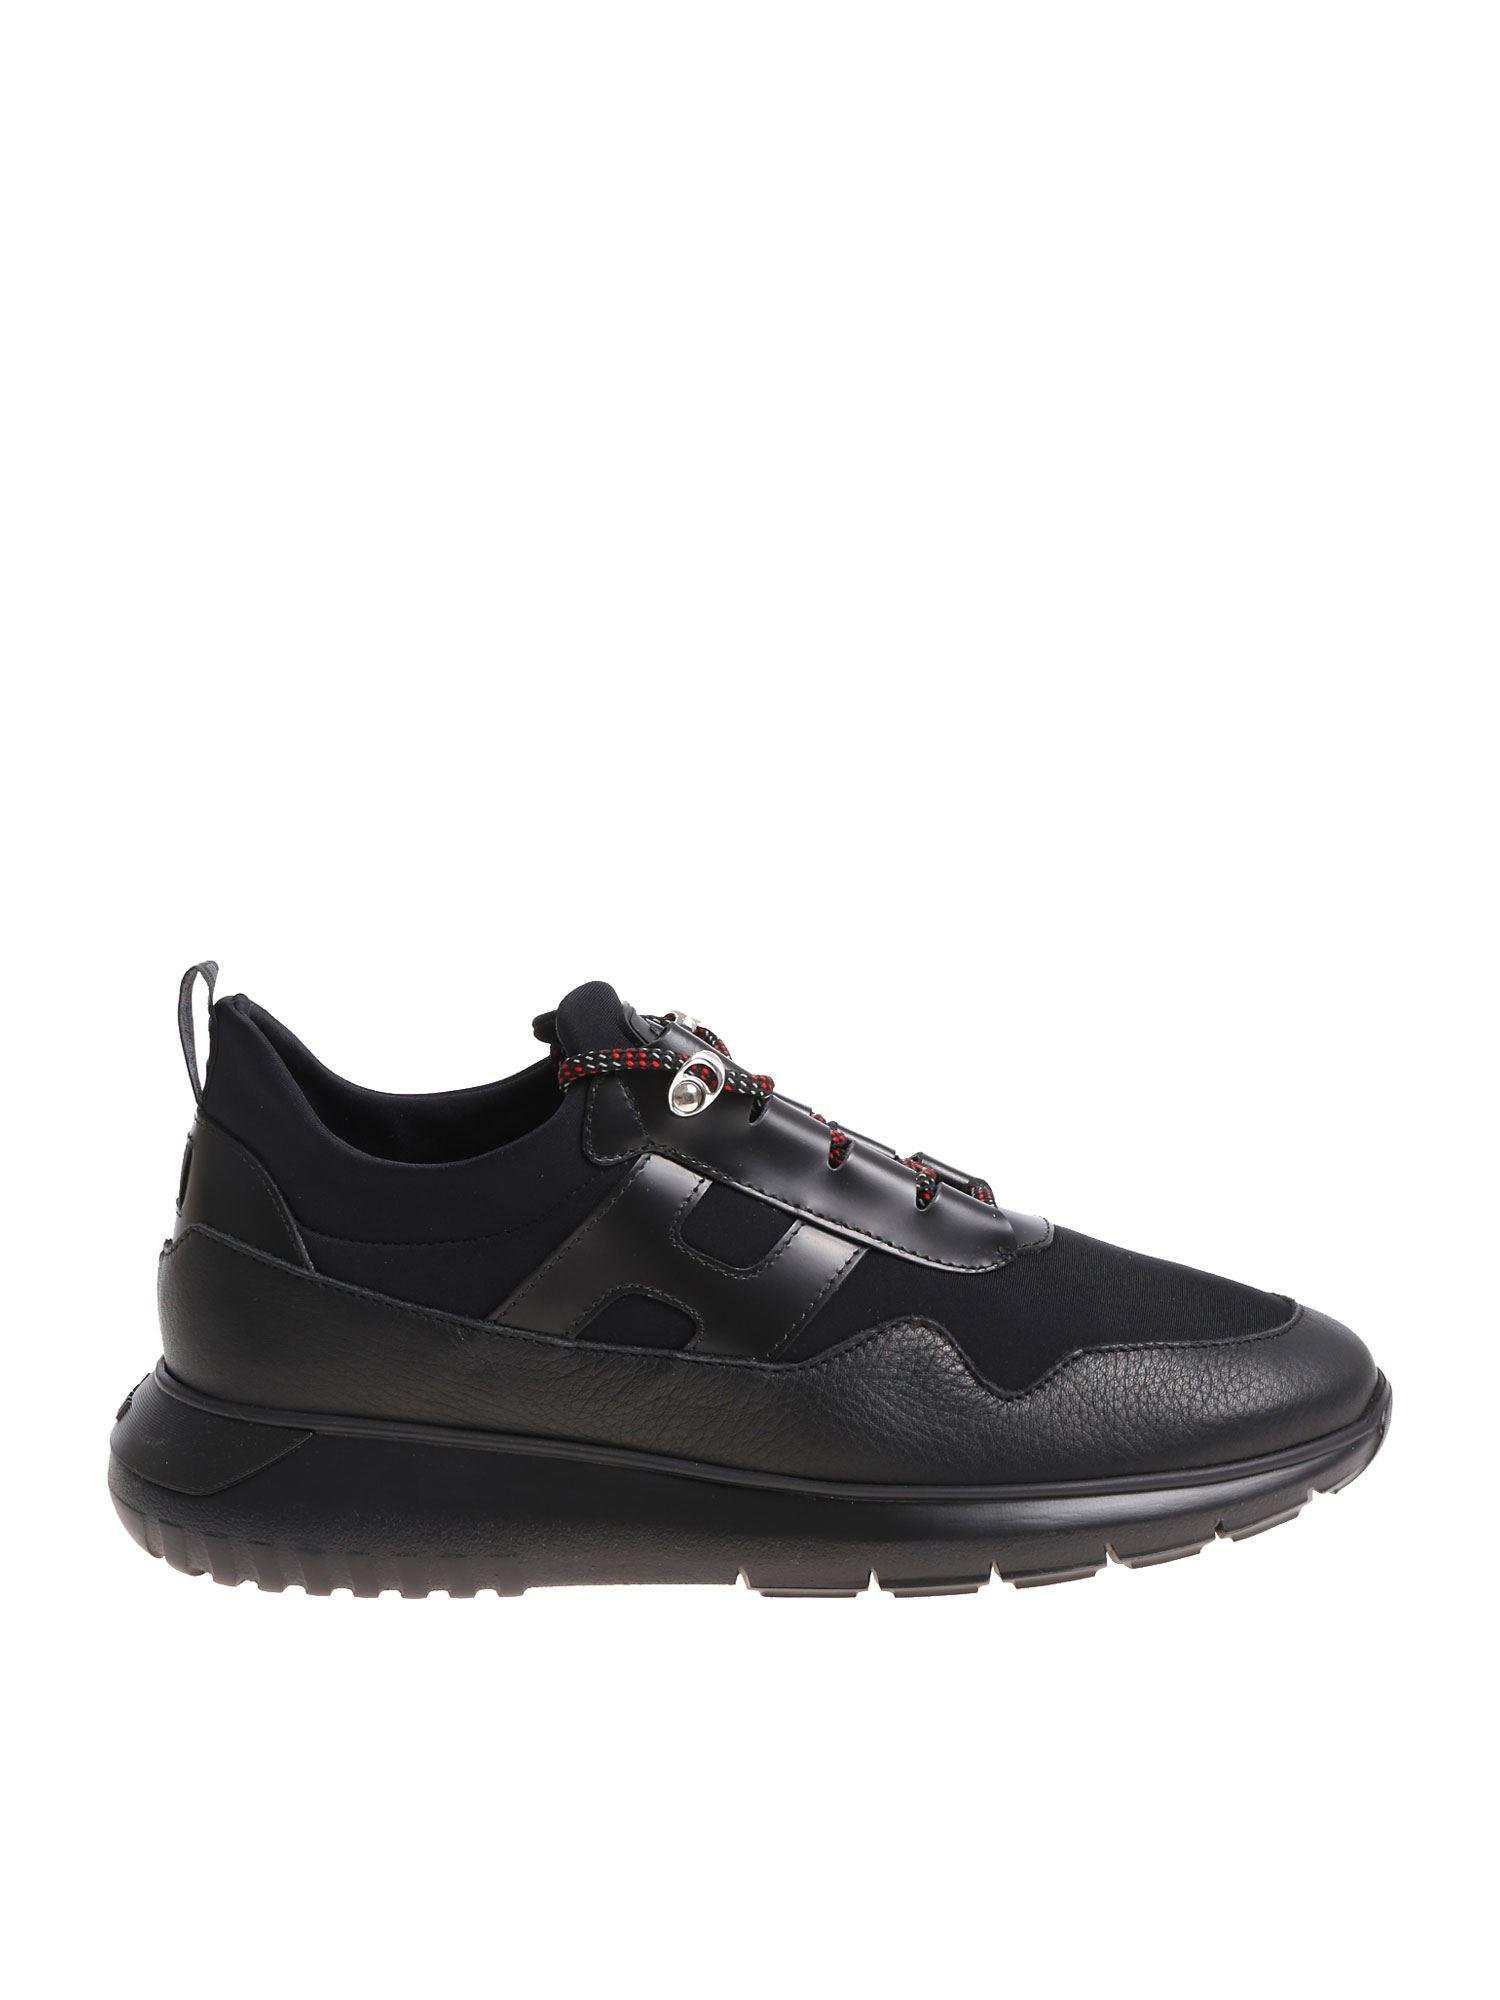 Hogan Leather Interactive 3 Black Sneakers for Men - Lyst